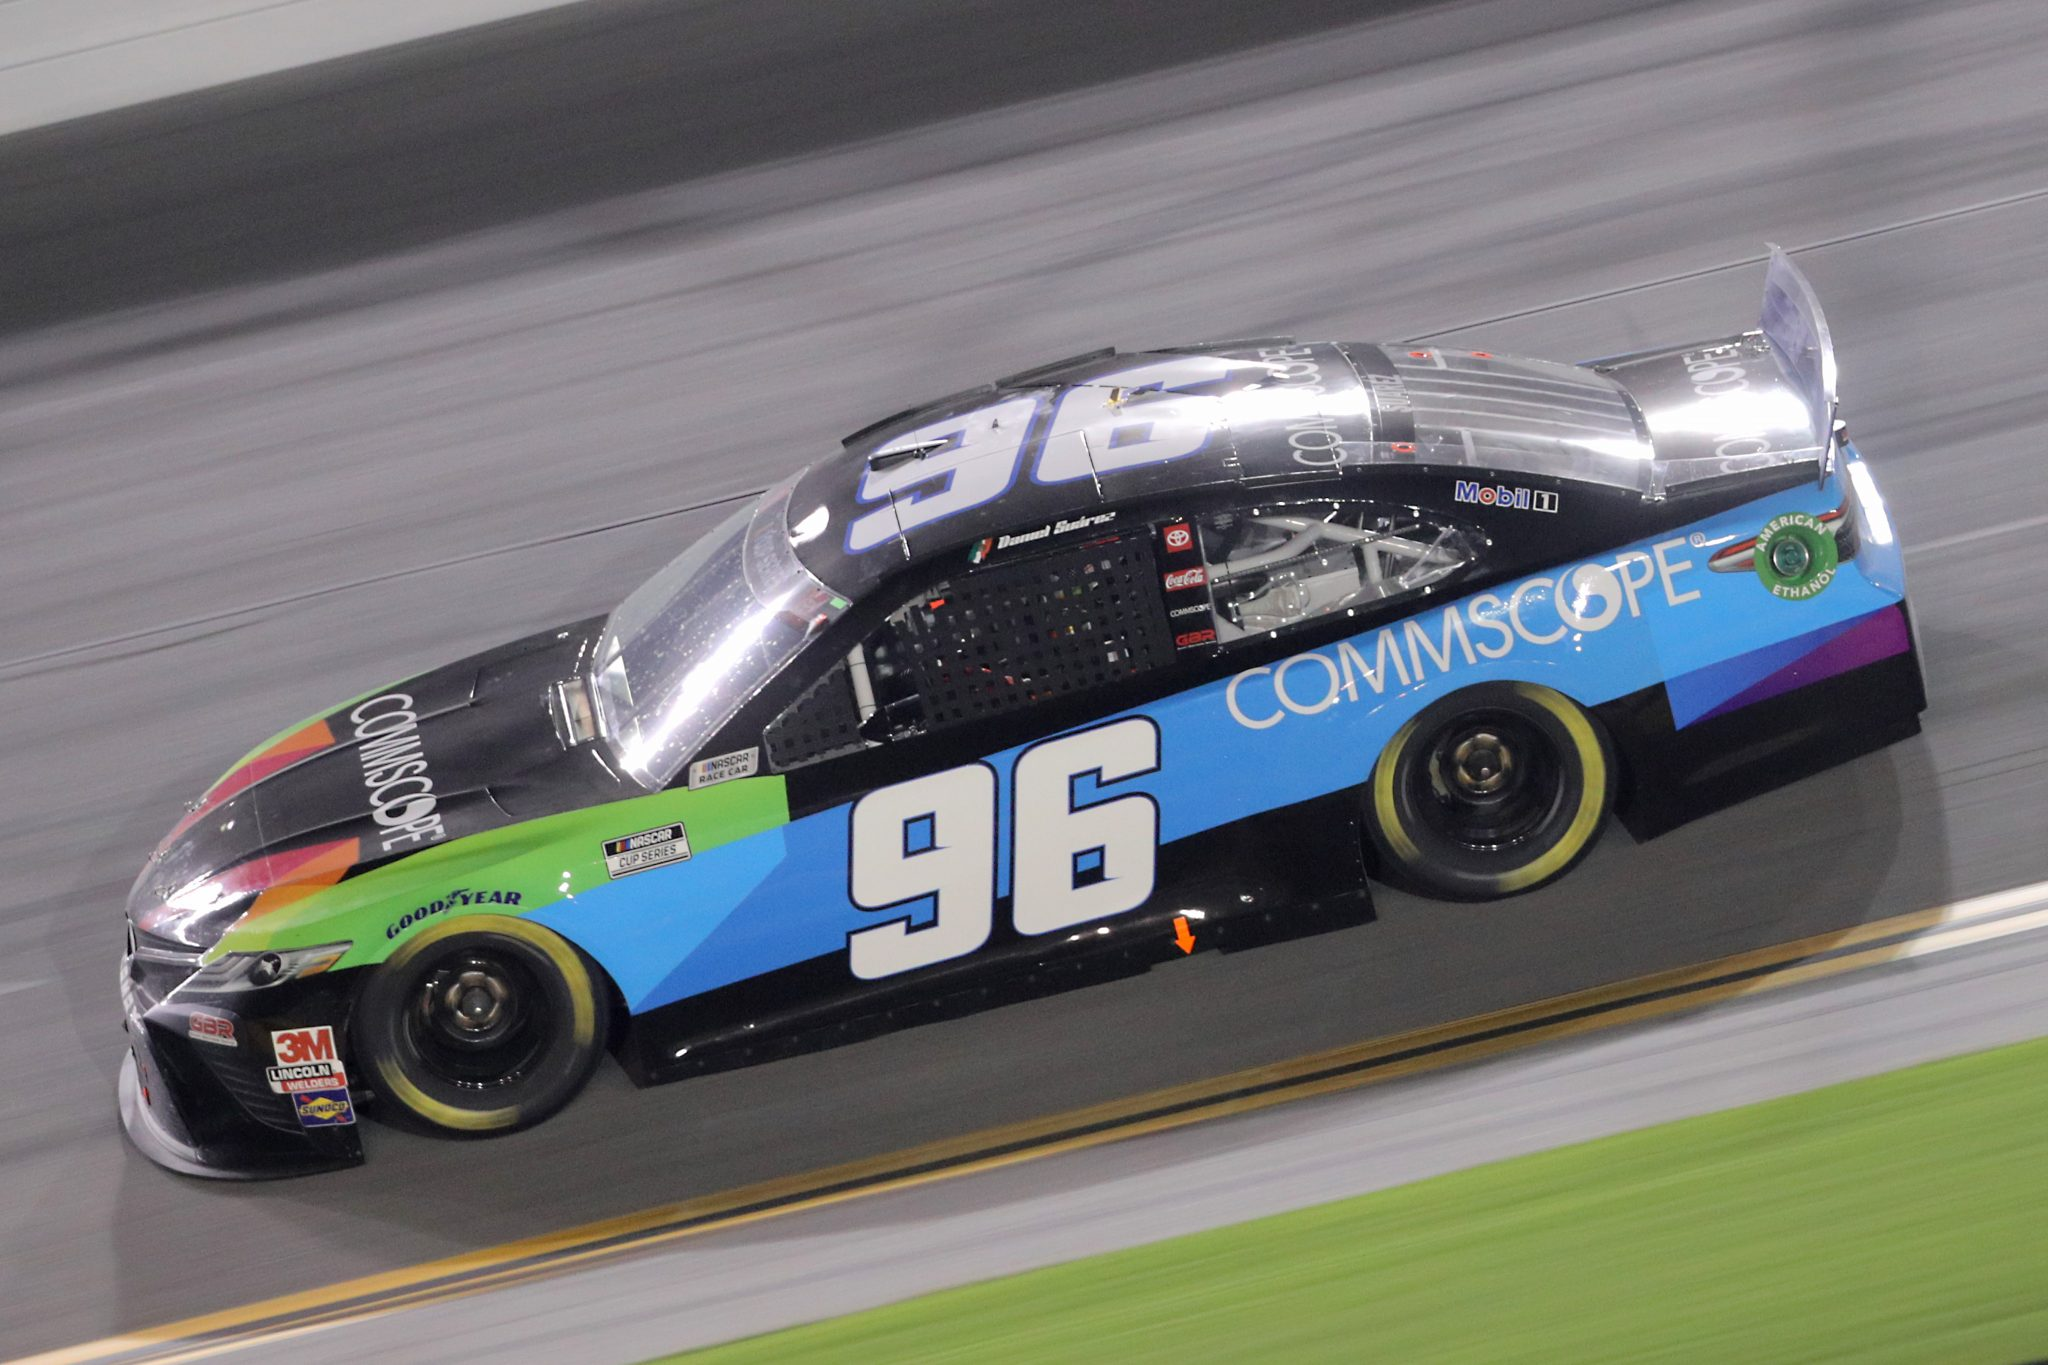 DAYTONA BEACH, FLORIDA - AUGUST 29: Daniel Suarez, driver of the #96 CommScope Toyota, races during the NASCAR Cup Series Coke Zero Sugar 400 at Daytona International Speedway on August 29, 2020 in Daytona Beach, Florida. (Photo by Chris Graythen/Getty Images) | Getty Images